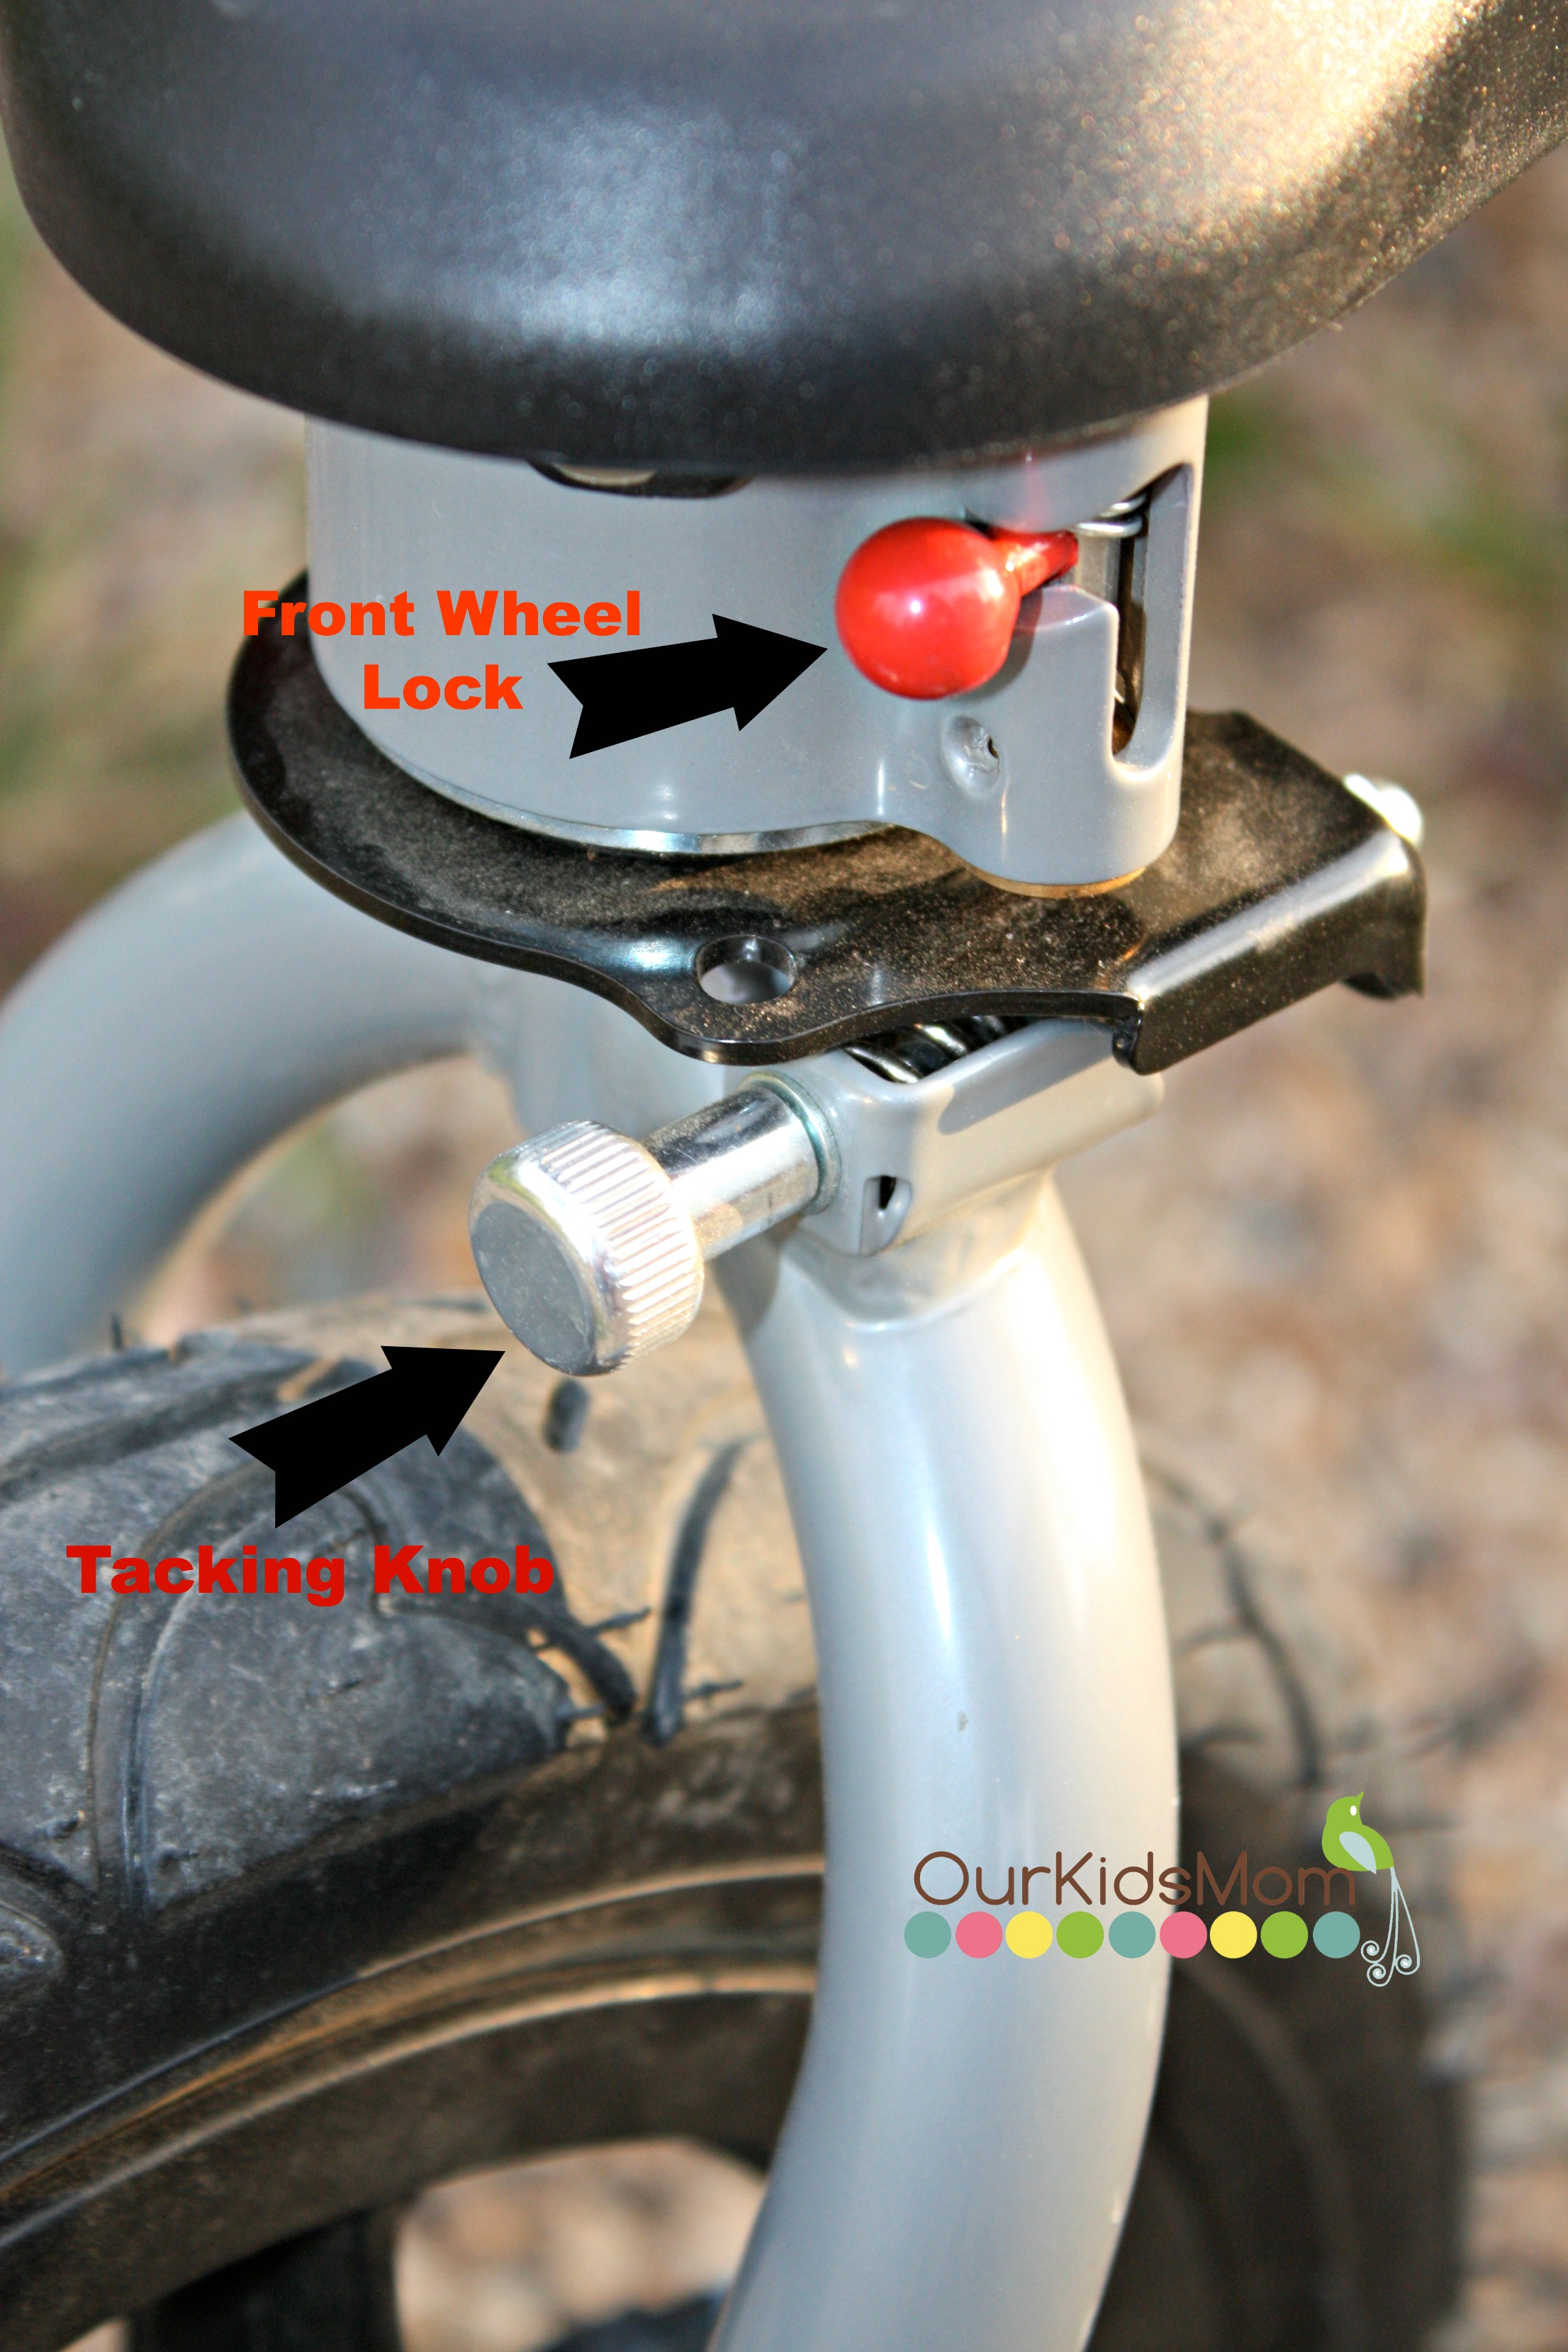 Wheel Lock and Tracking Knob